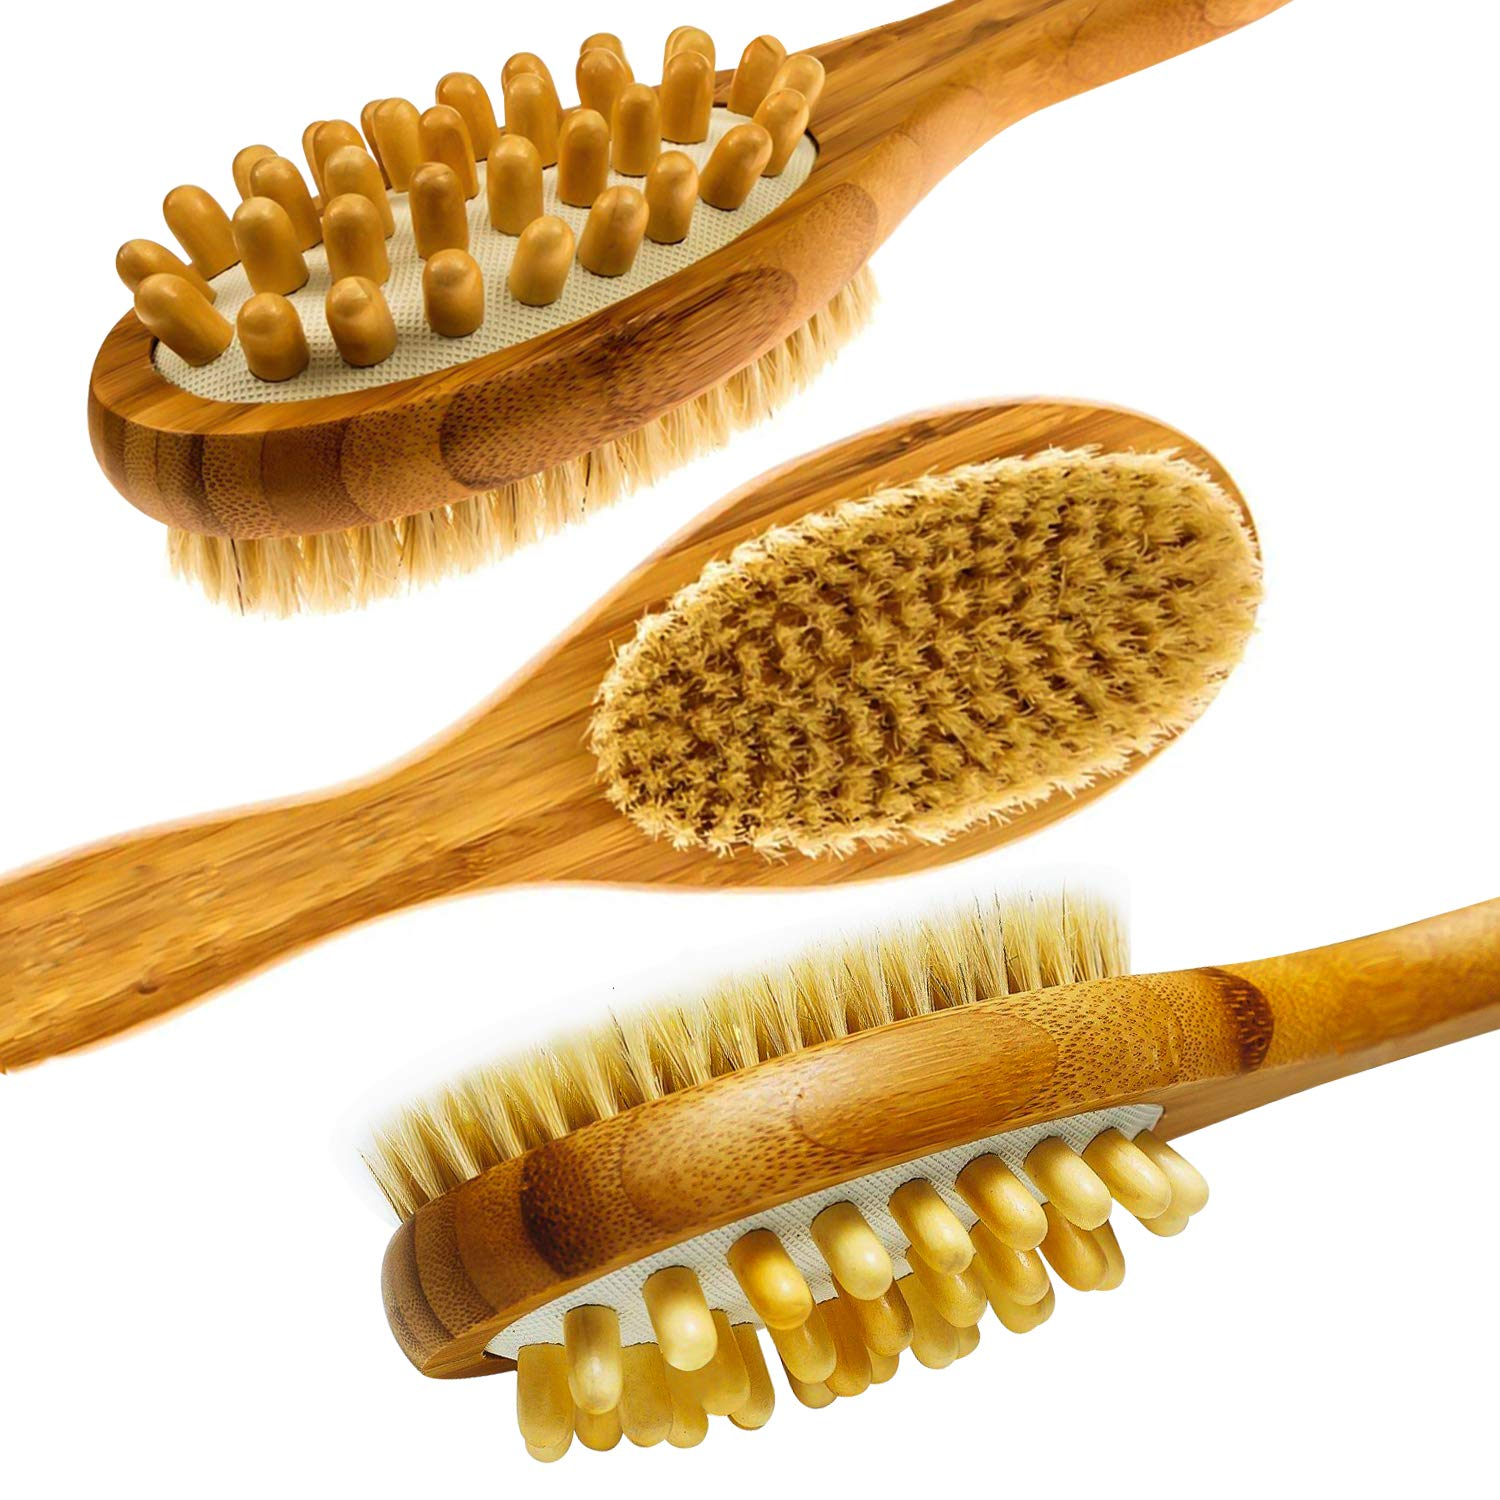 LunaBody Bamboo Body Brush for Back Boar Free Shipping New - Bristle Natural Max 80% OFF Scrub